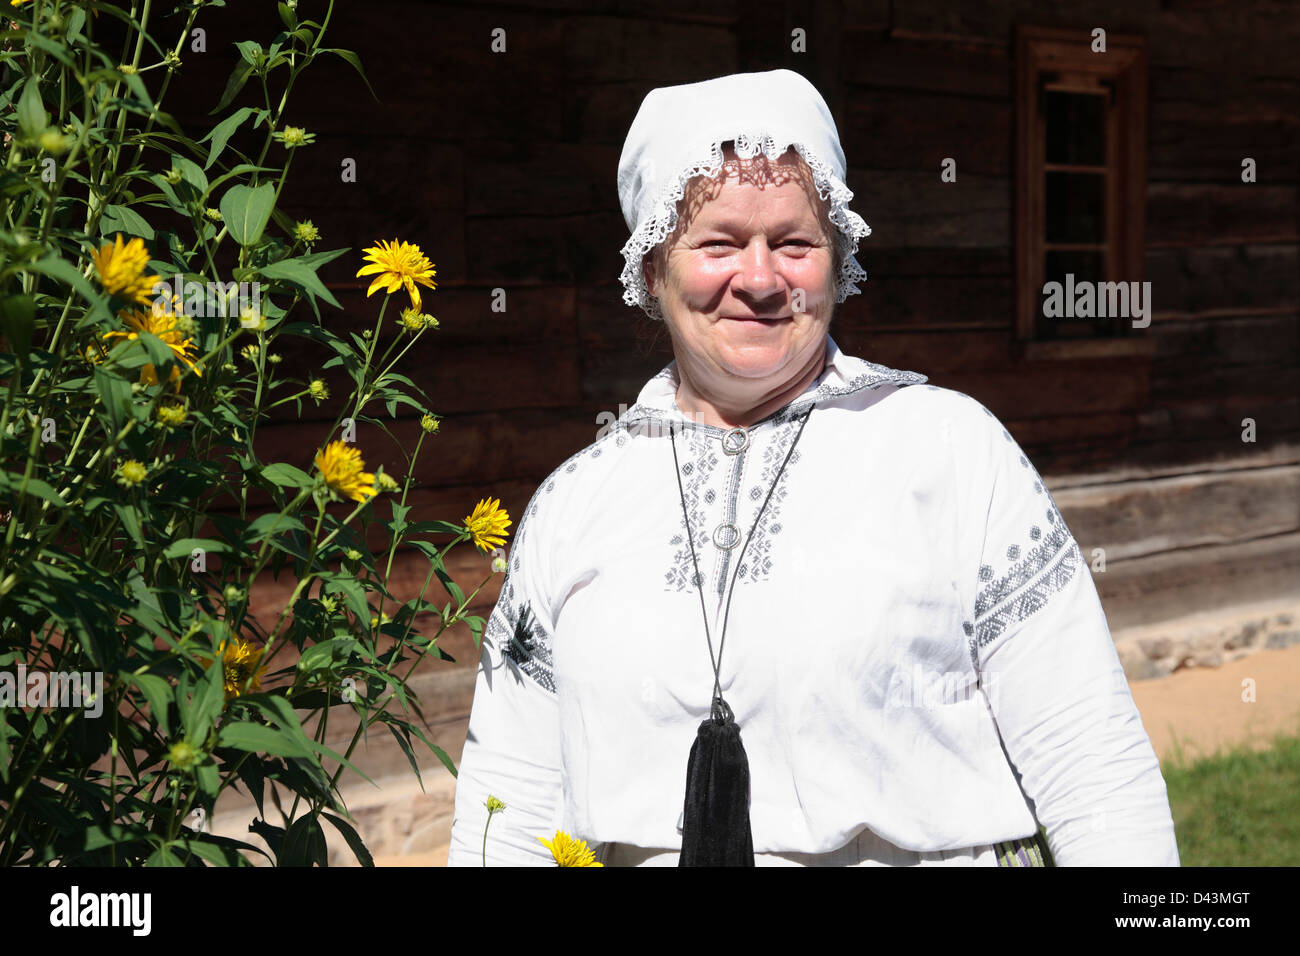 Latvian Ethnographic Open-air Museum, near Riga, Latvia - Stock Image